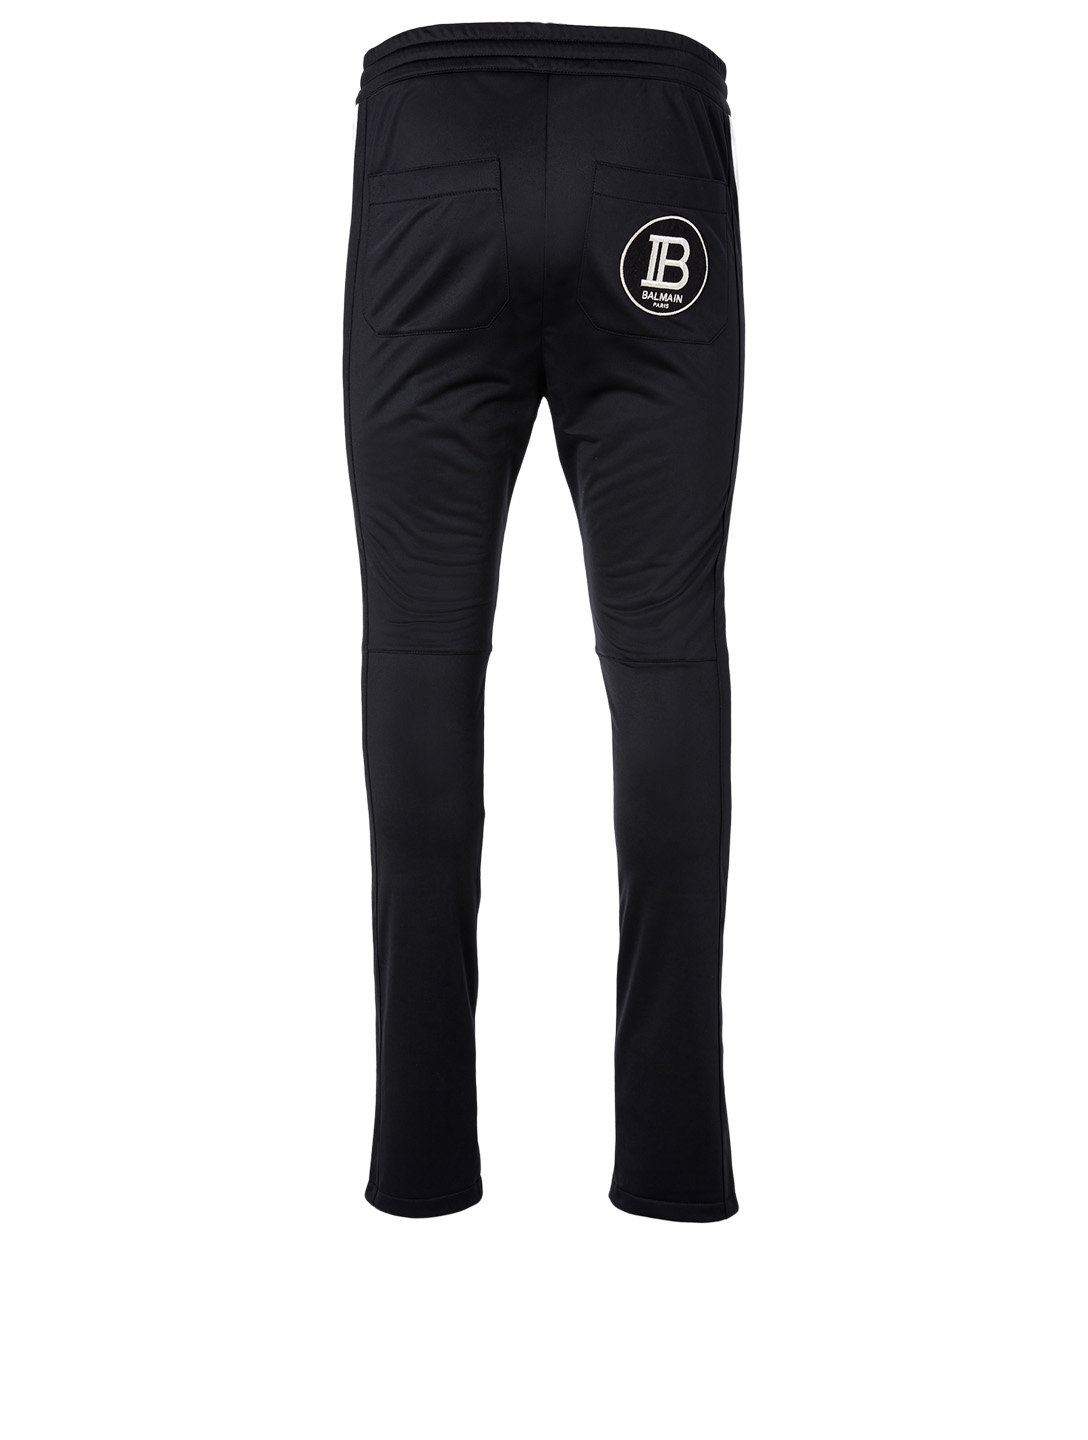 BALMAIN Logo Drawstring Sweatpants Men's Black